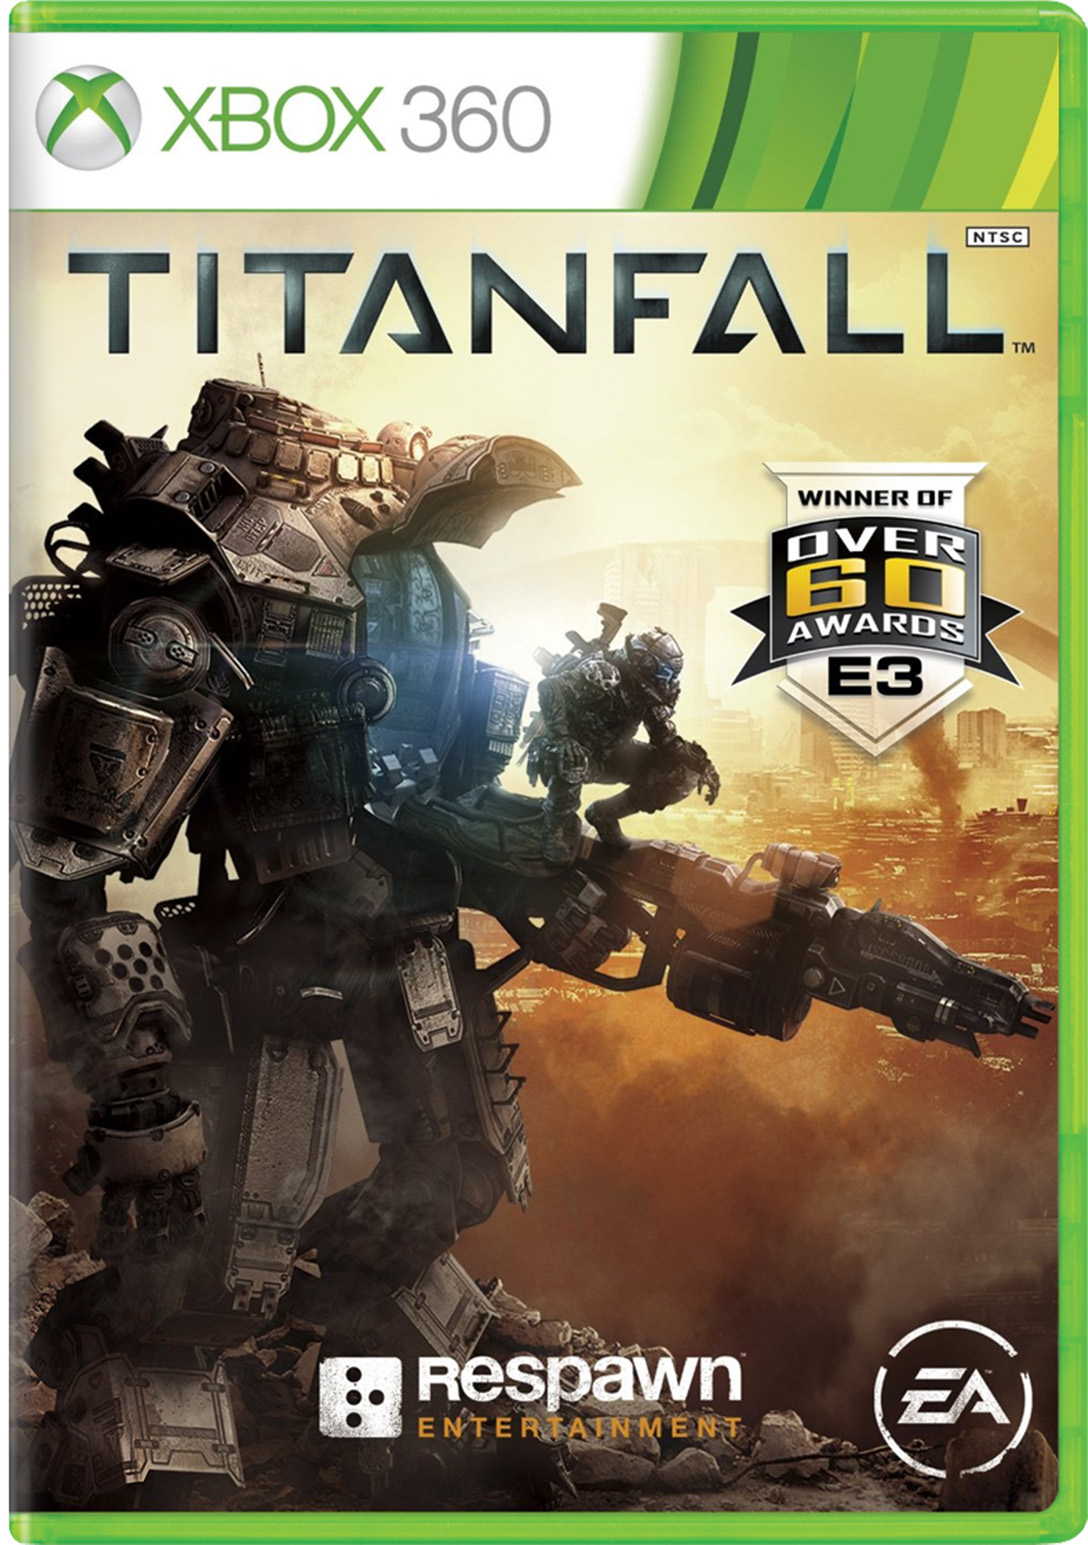 Titanfall Deluxe Edition for Xbox 360